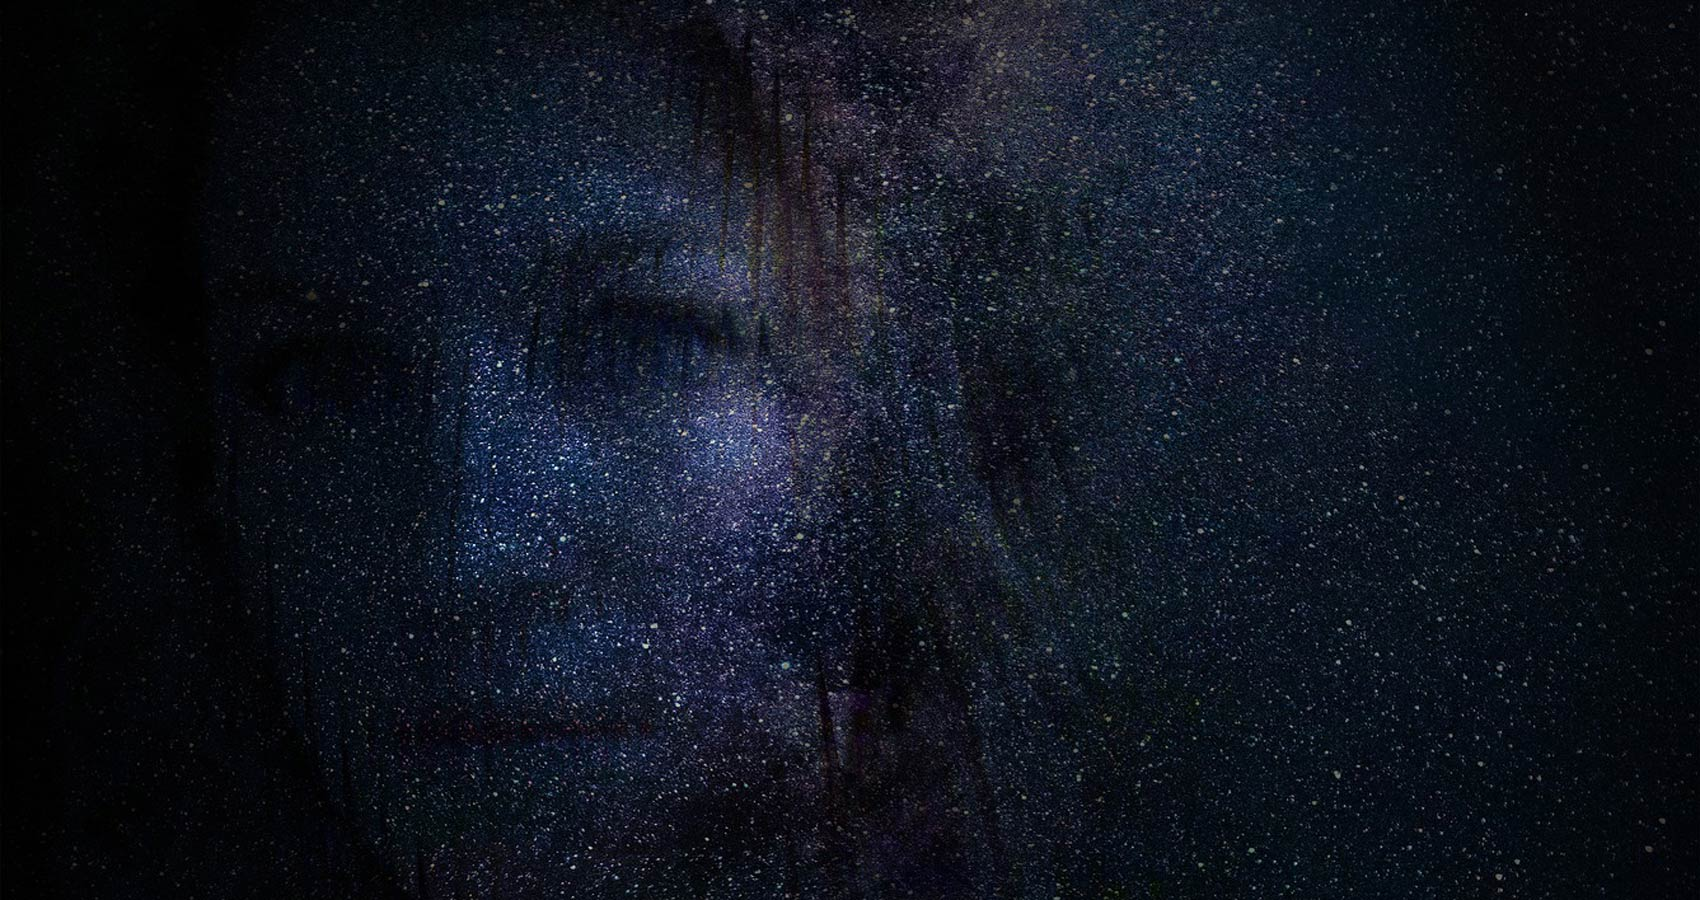 Reaching For The Stars, a poem by Brandi Livingston at Spillwords.com